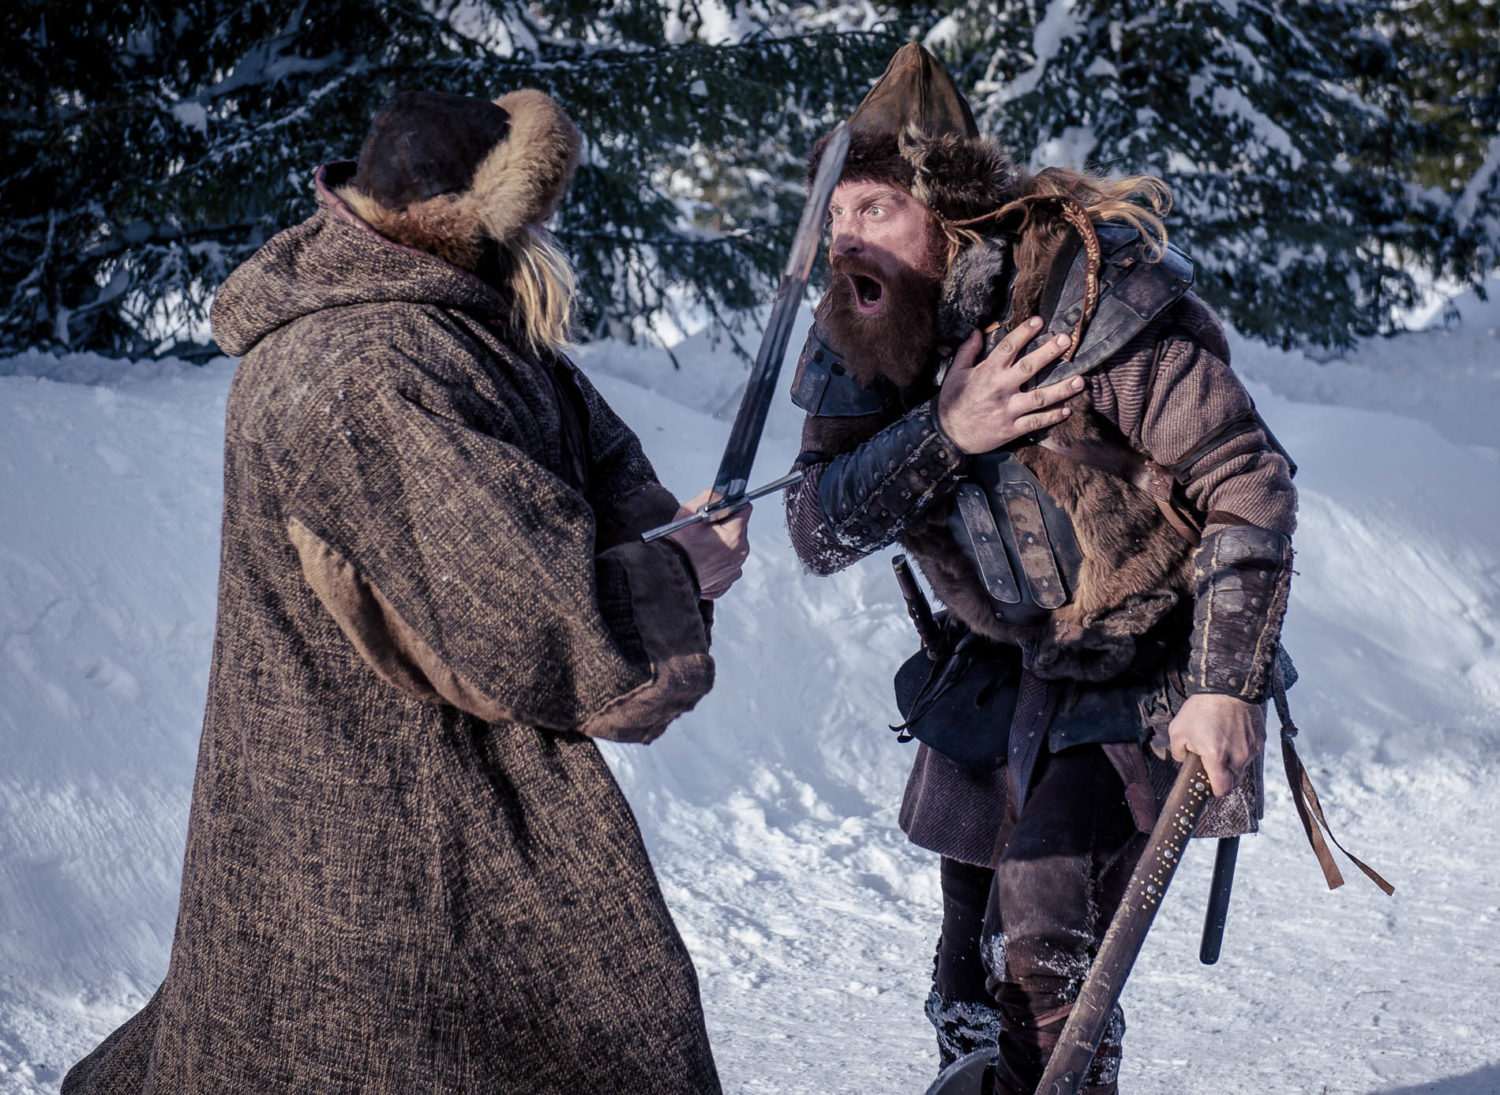 Arda, Birkebeinerne, Film Set, Film Still, Lillehammer, Norway, On Set, Production Still, The Last King, The World